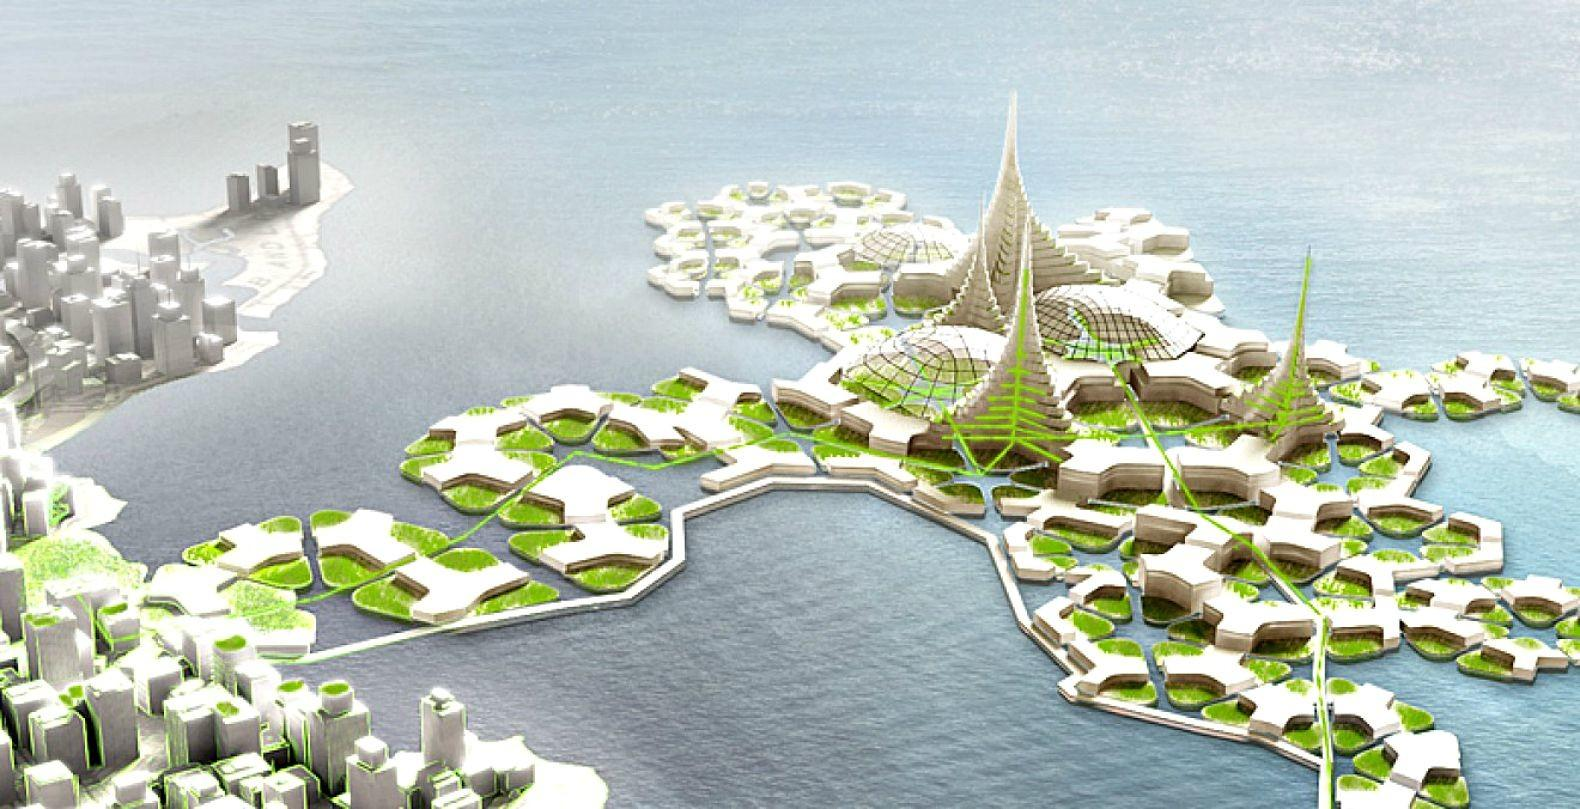 Japan Future Floating Sustainable Cities Asia Green